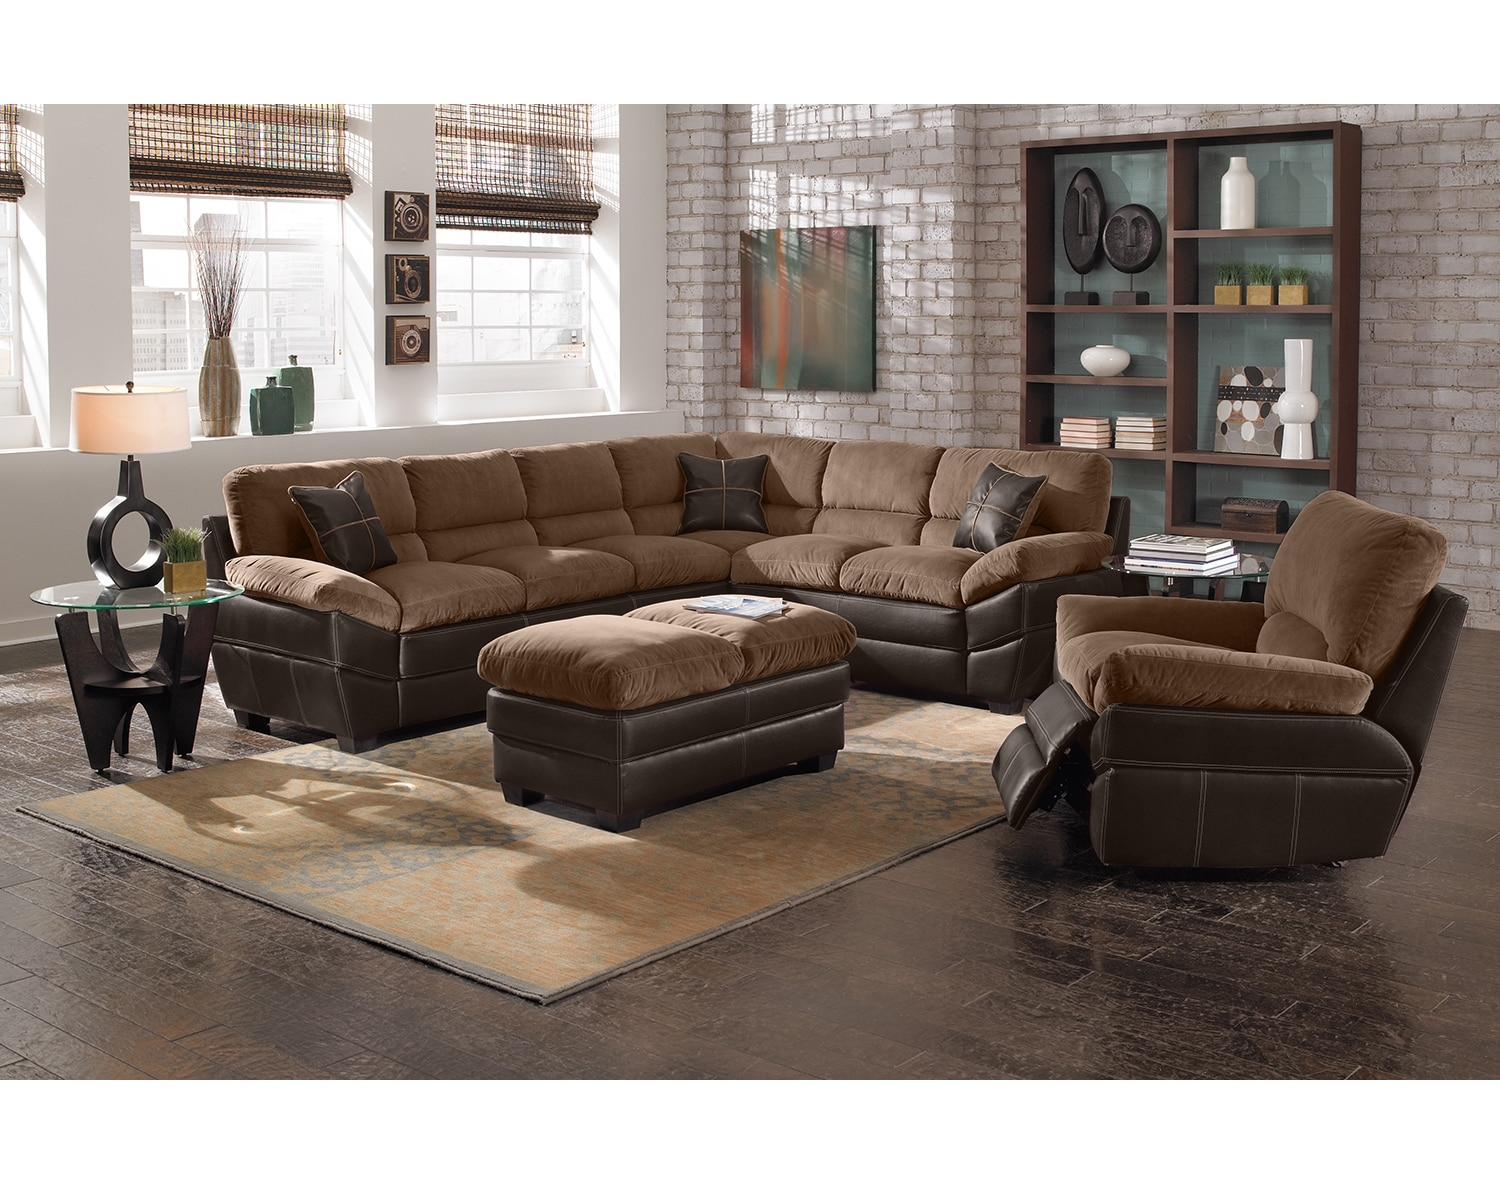 Value City Furniture Living Room The Chandler Sectional Collection Beige Value City Furniture